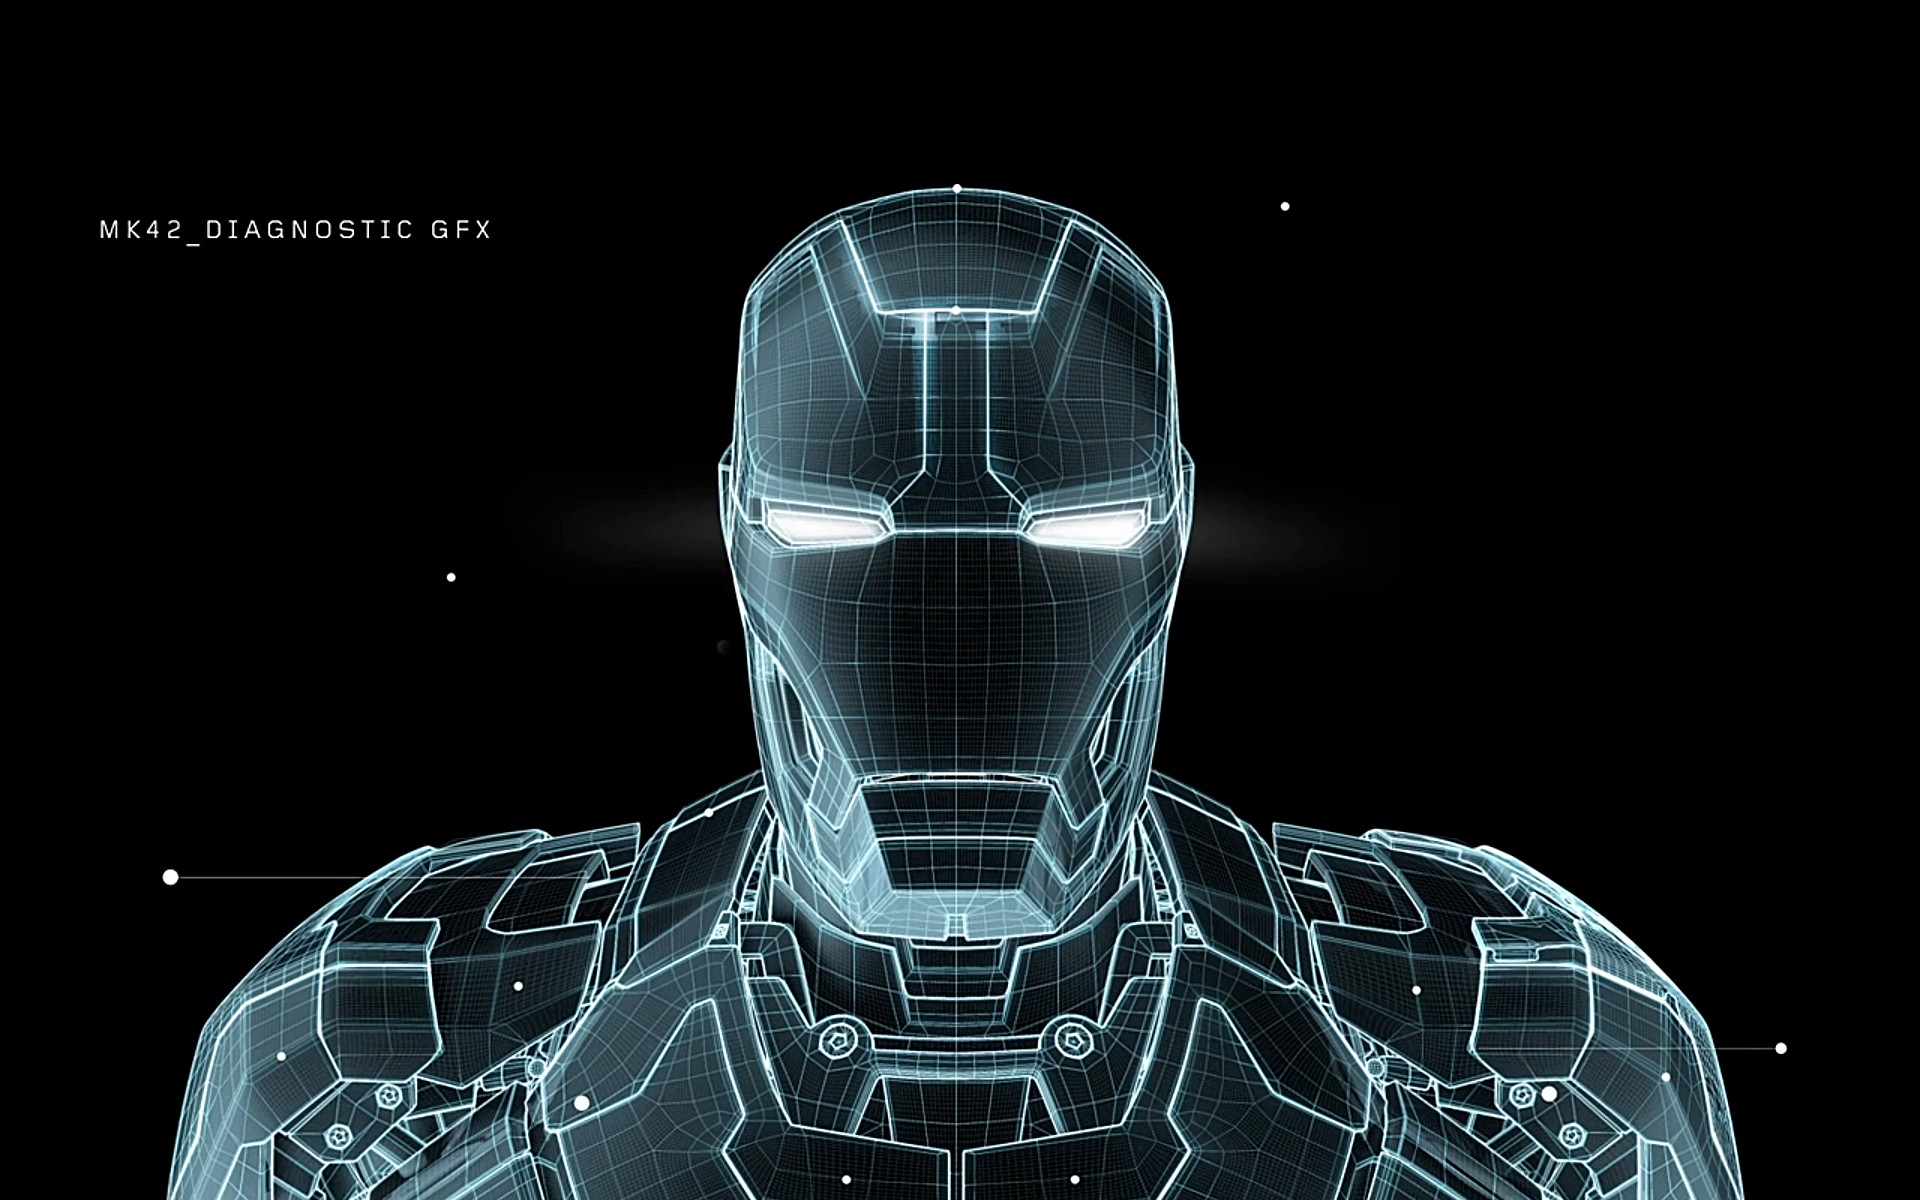 Iron man active wallpaper wallpapersafari - Iron man wallpaper anime ...